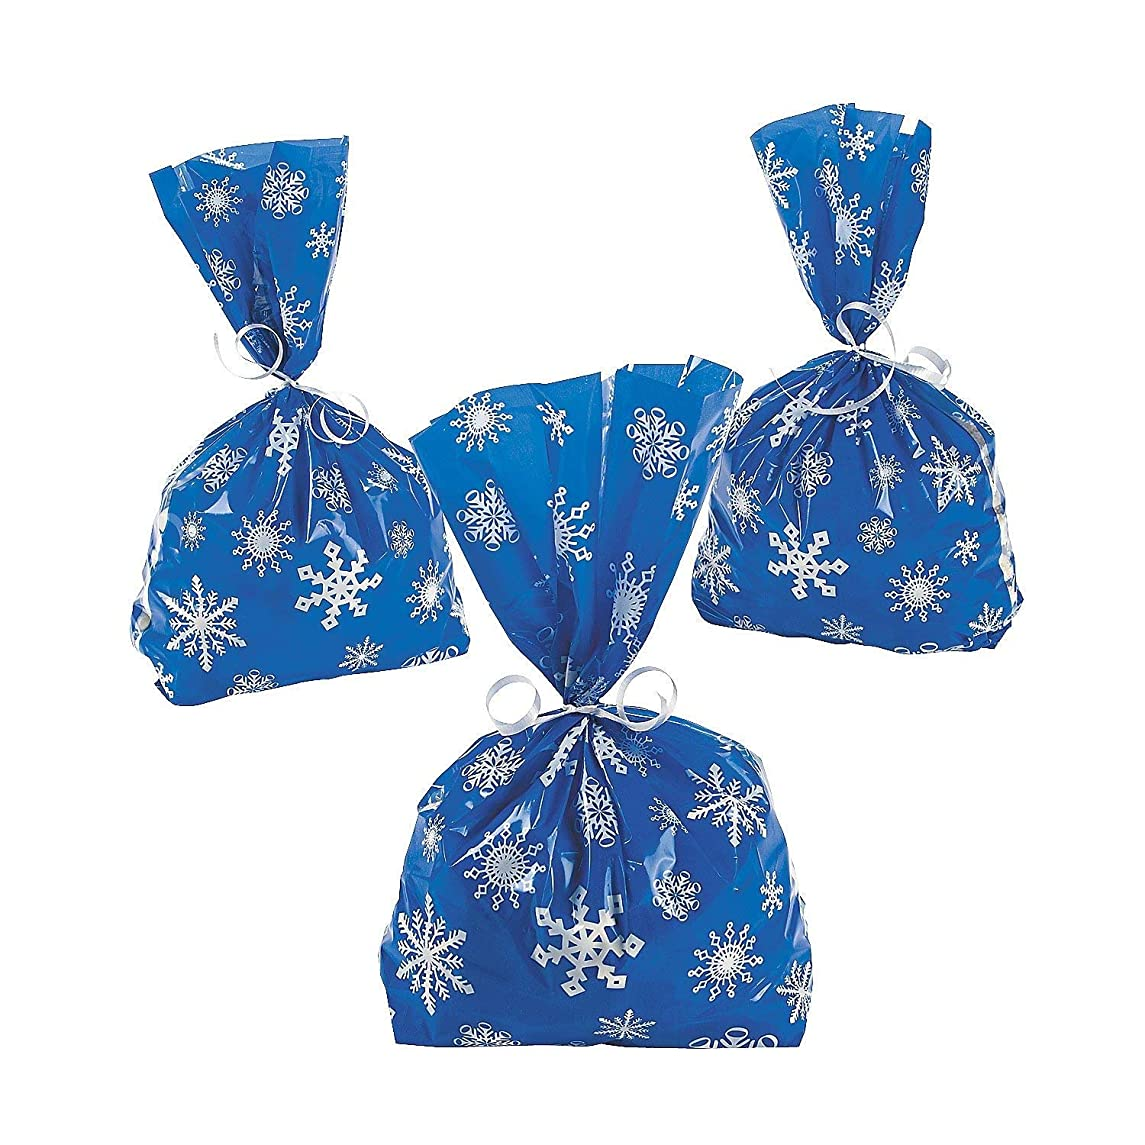 72 Blue SNOWFLAKE Cellophane GOODY Bags 6 DOZEN - WINTER/Christmas HOLIDAY/CELLO Bags/Favors/CANDY/SWEETS by FX